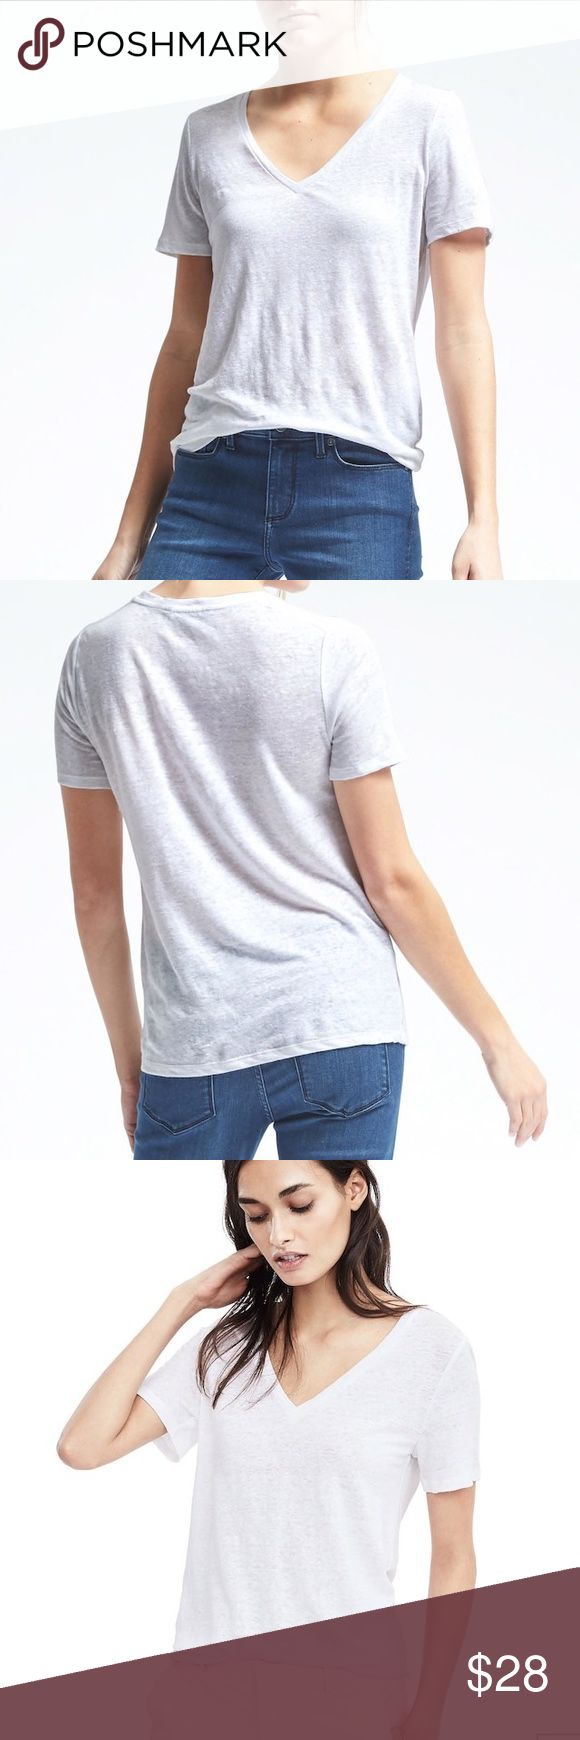 NWT Banana Republic Short-Sleeve Linen V tshirt NWT Banana Republic signature tees are fashioned from super soft, lightweight fabrics for a flattering drape. Wear alone or mix, match and layer. V-neck. Short sleeves. Straight hem. 100% line hand wash Banana Republic Tops Tees - Short Sleeve